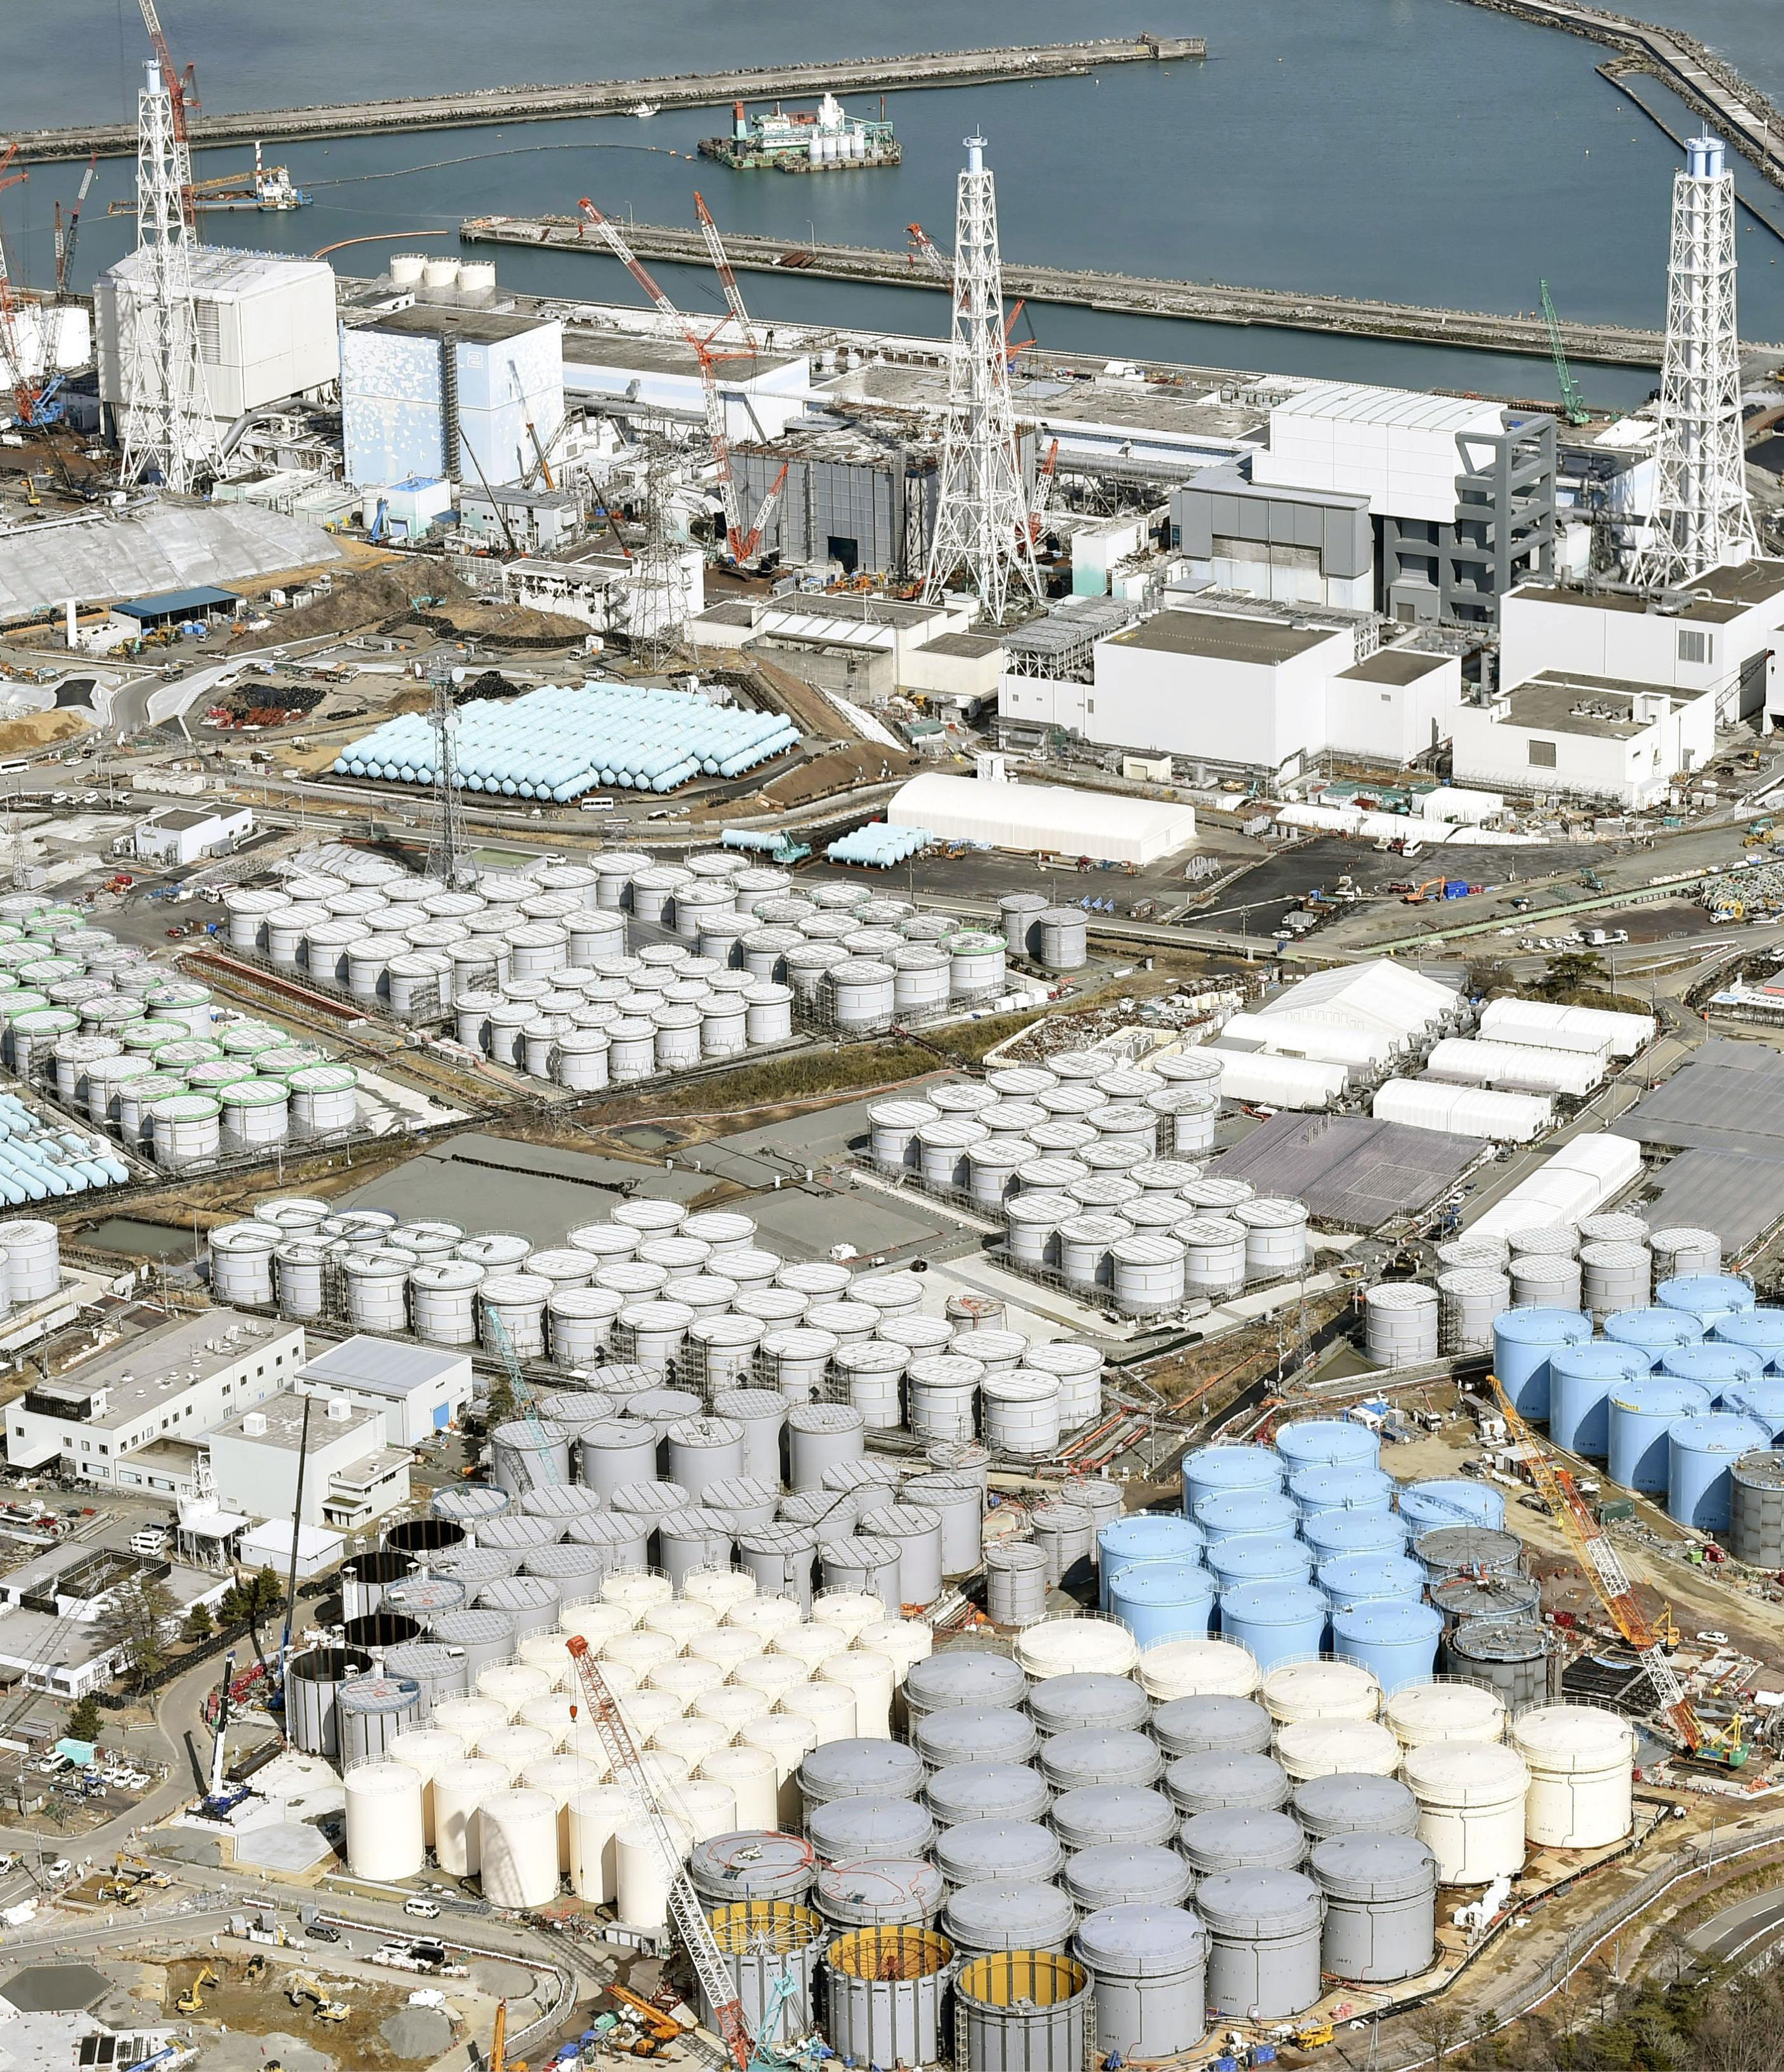 Tanks of radiation-contaminated water are seen at Tokyo Electric Power Co. (TEPCO)'s Fukushima Daiichi nuclear power plant in Fukushima, Japan on March 11, 2015.